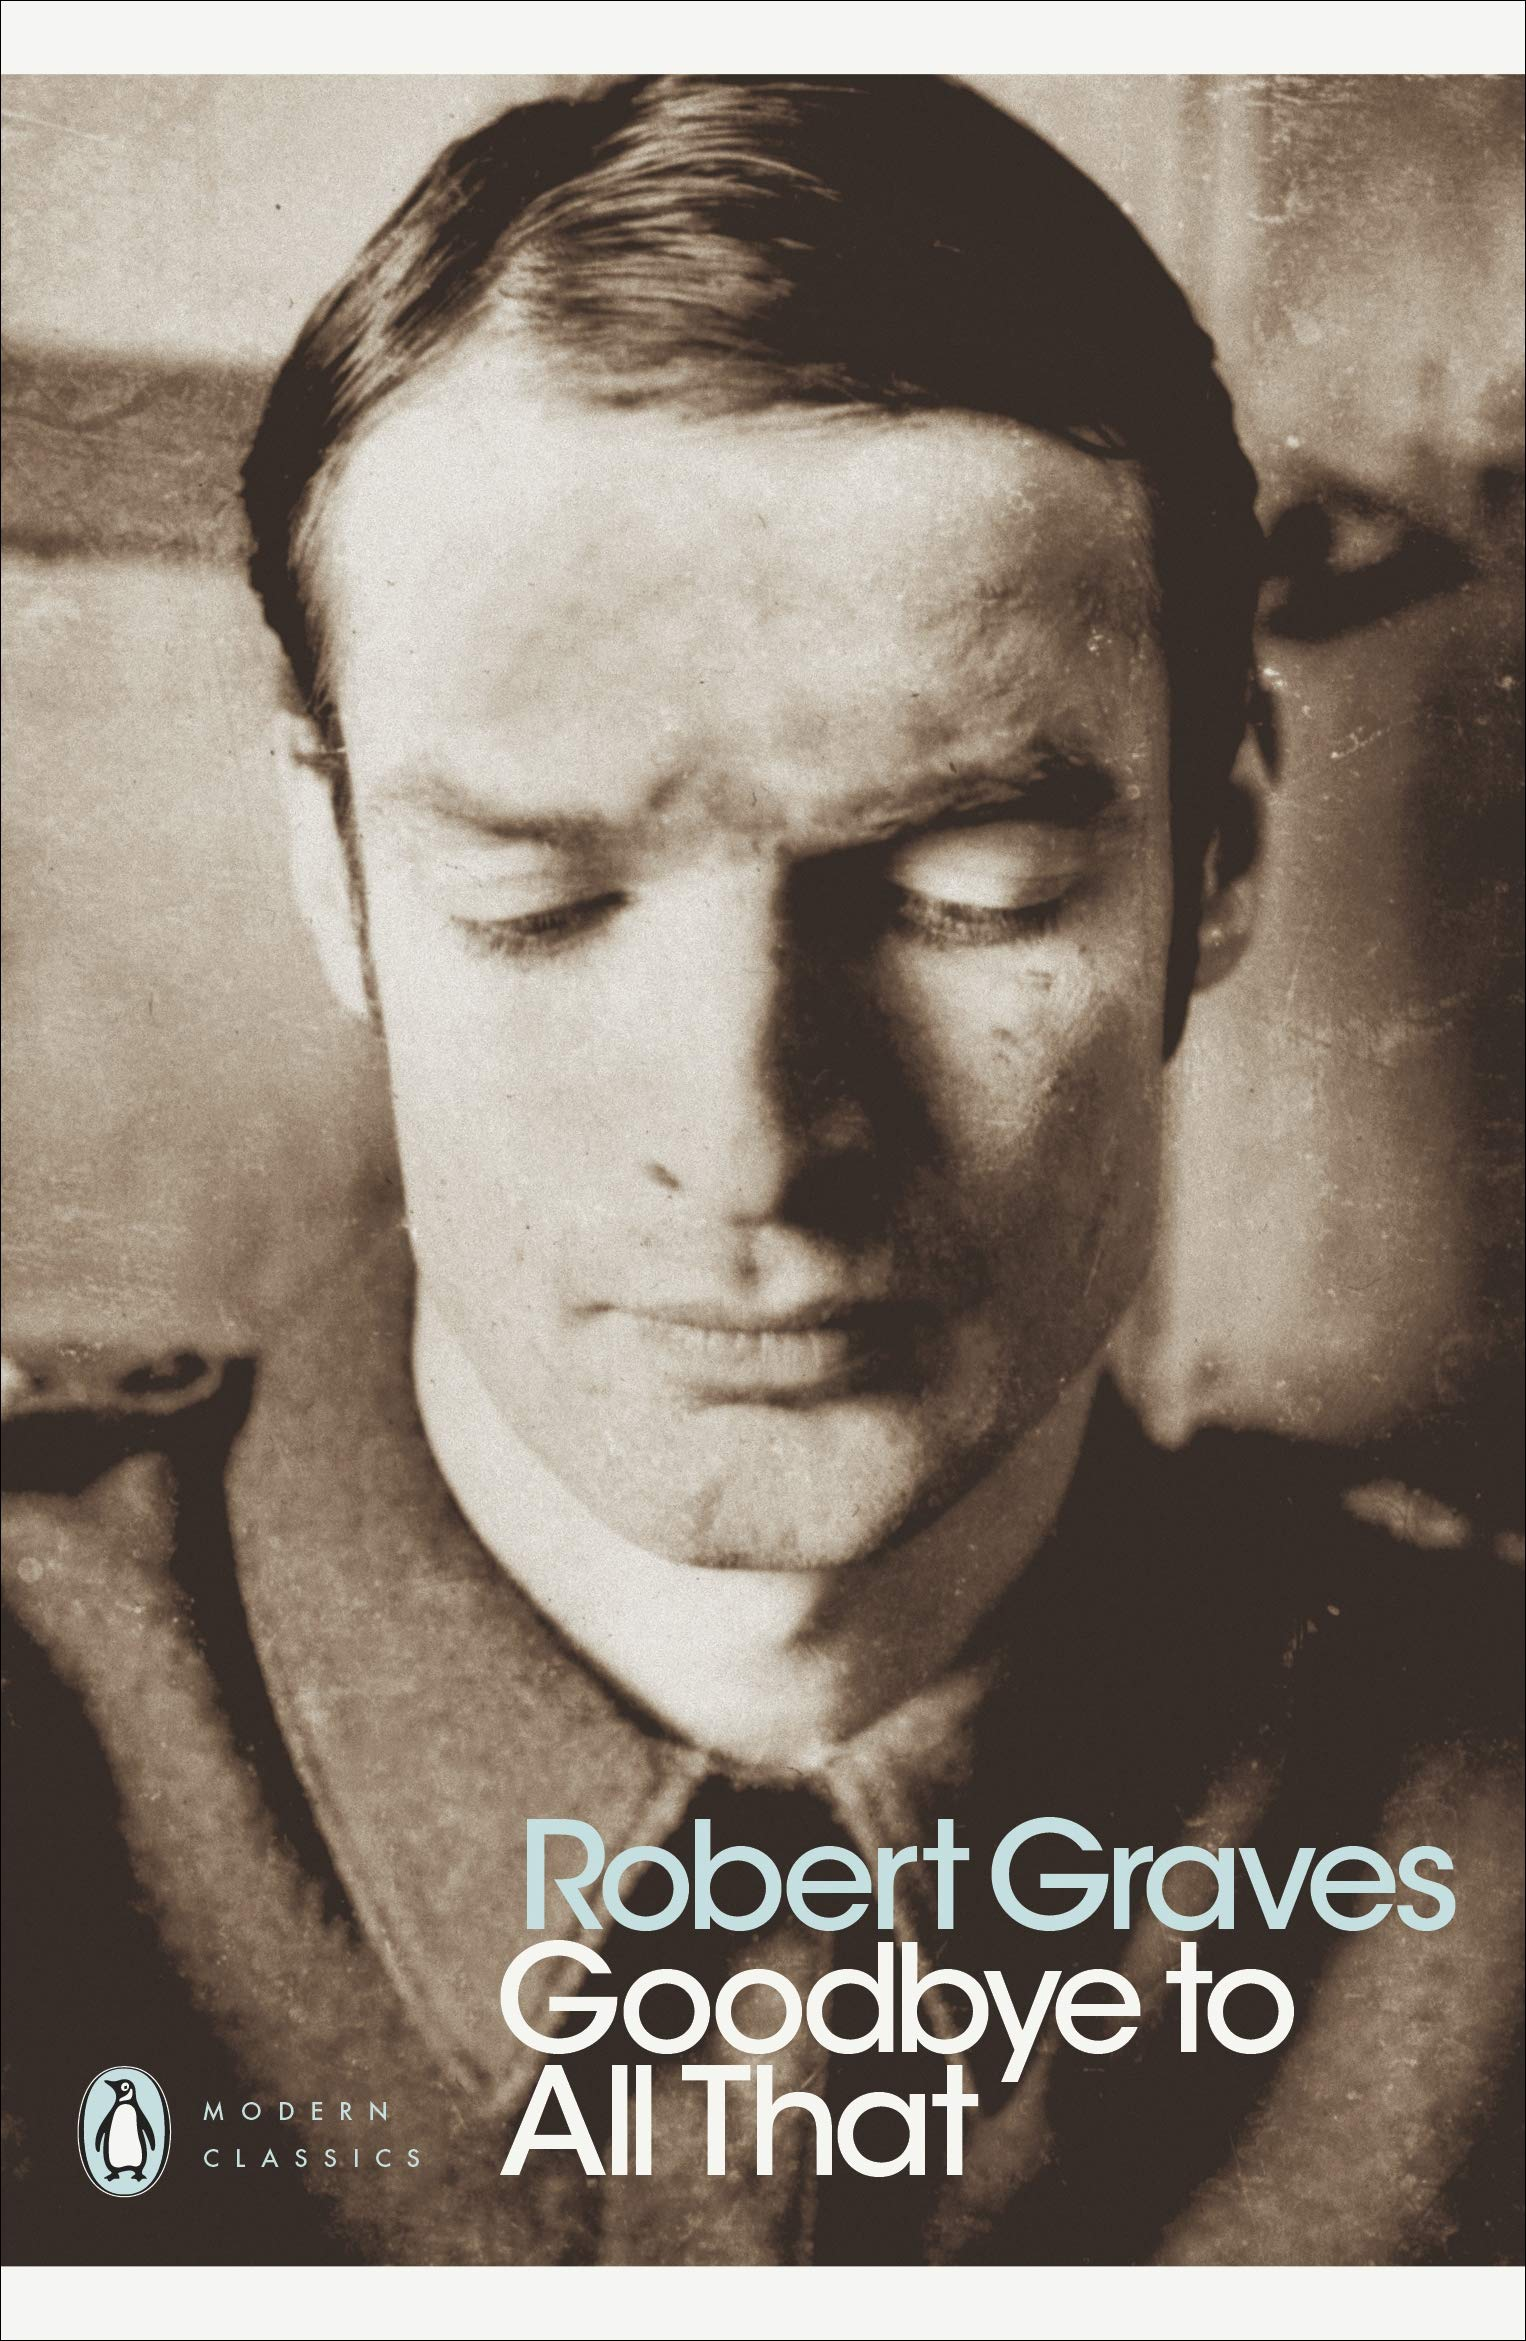 Robert Graves: Goodbye to All That